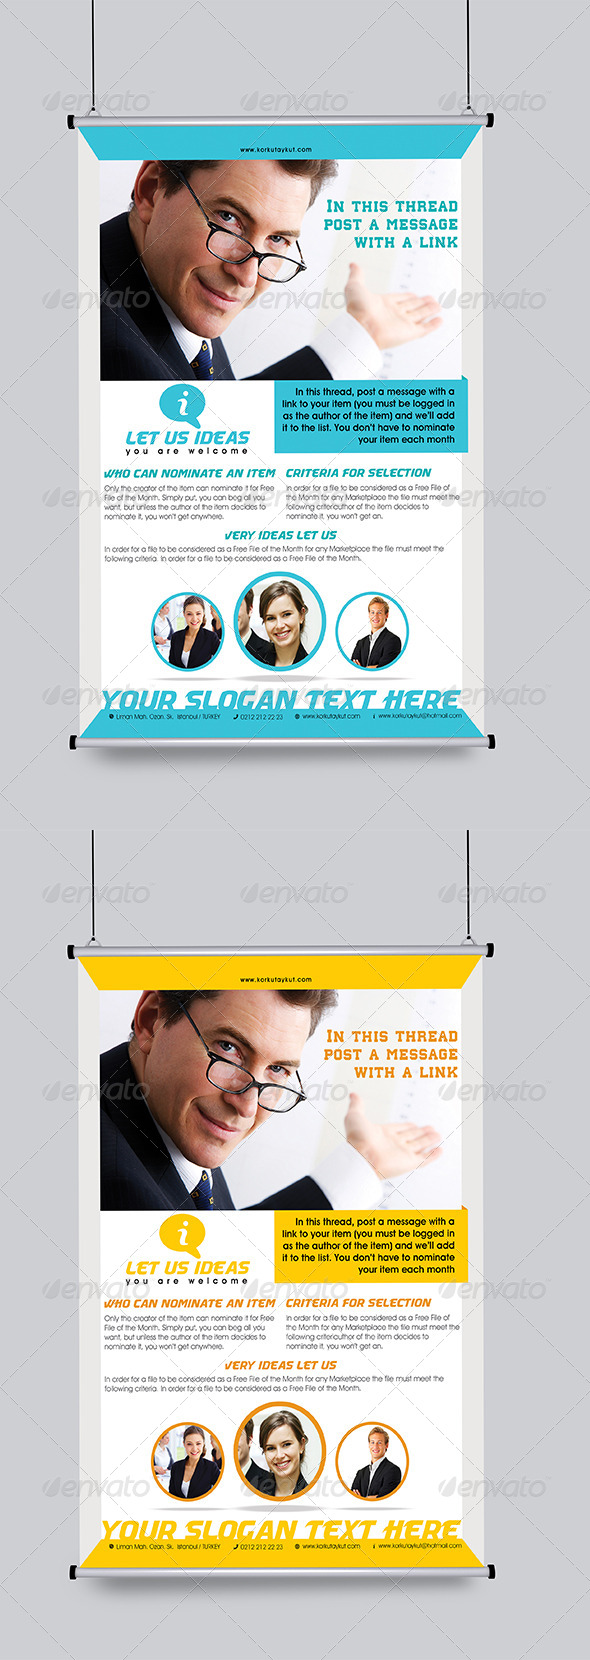 GraphicRiver Let Us Ideas Flyer Template 5994756